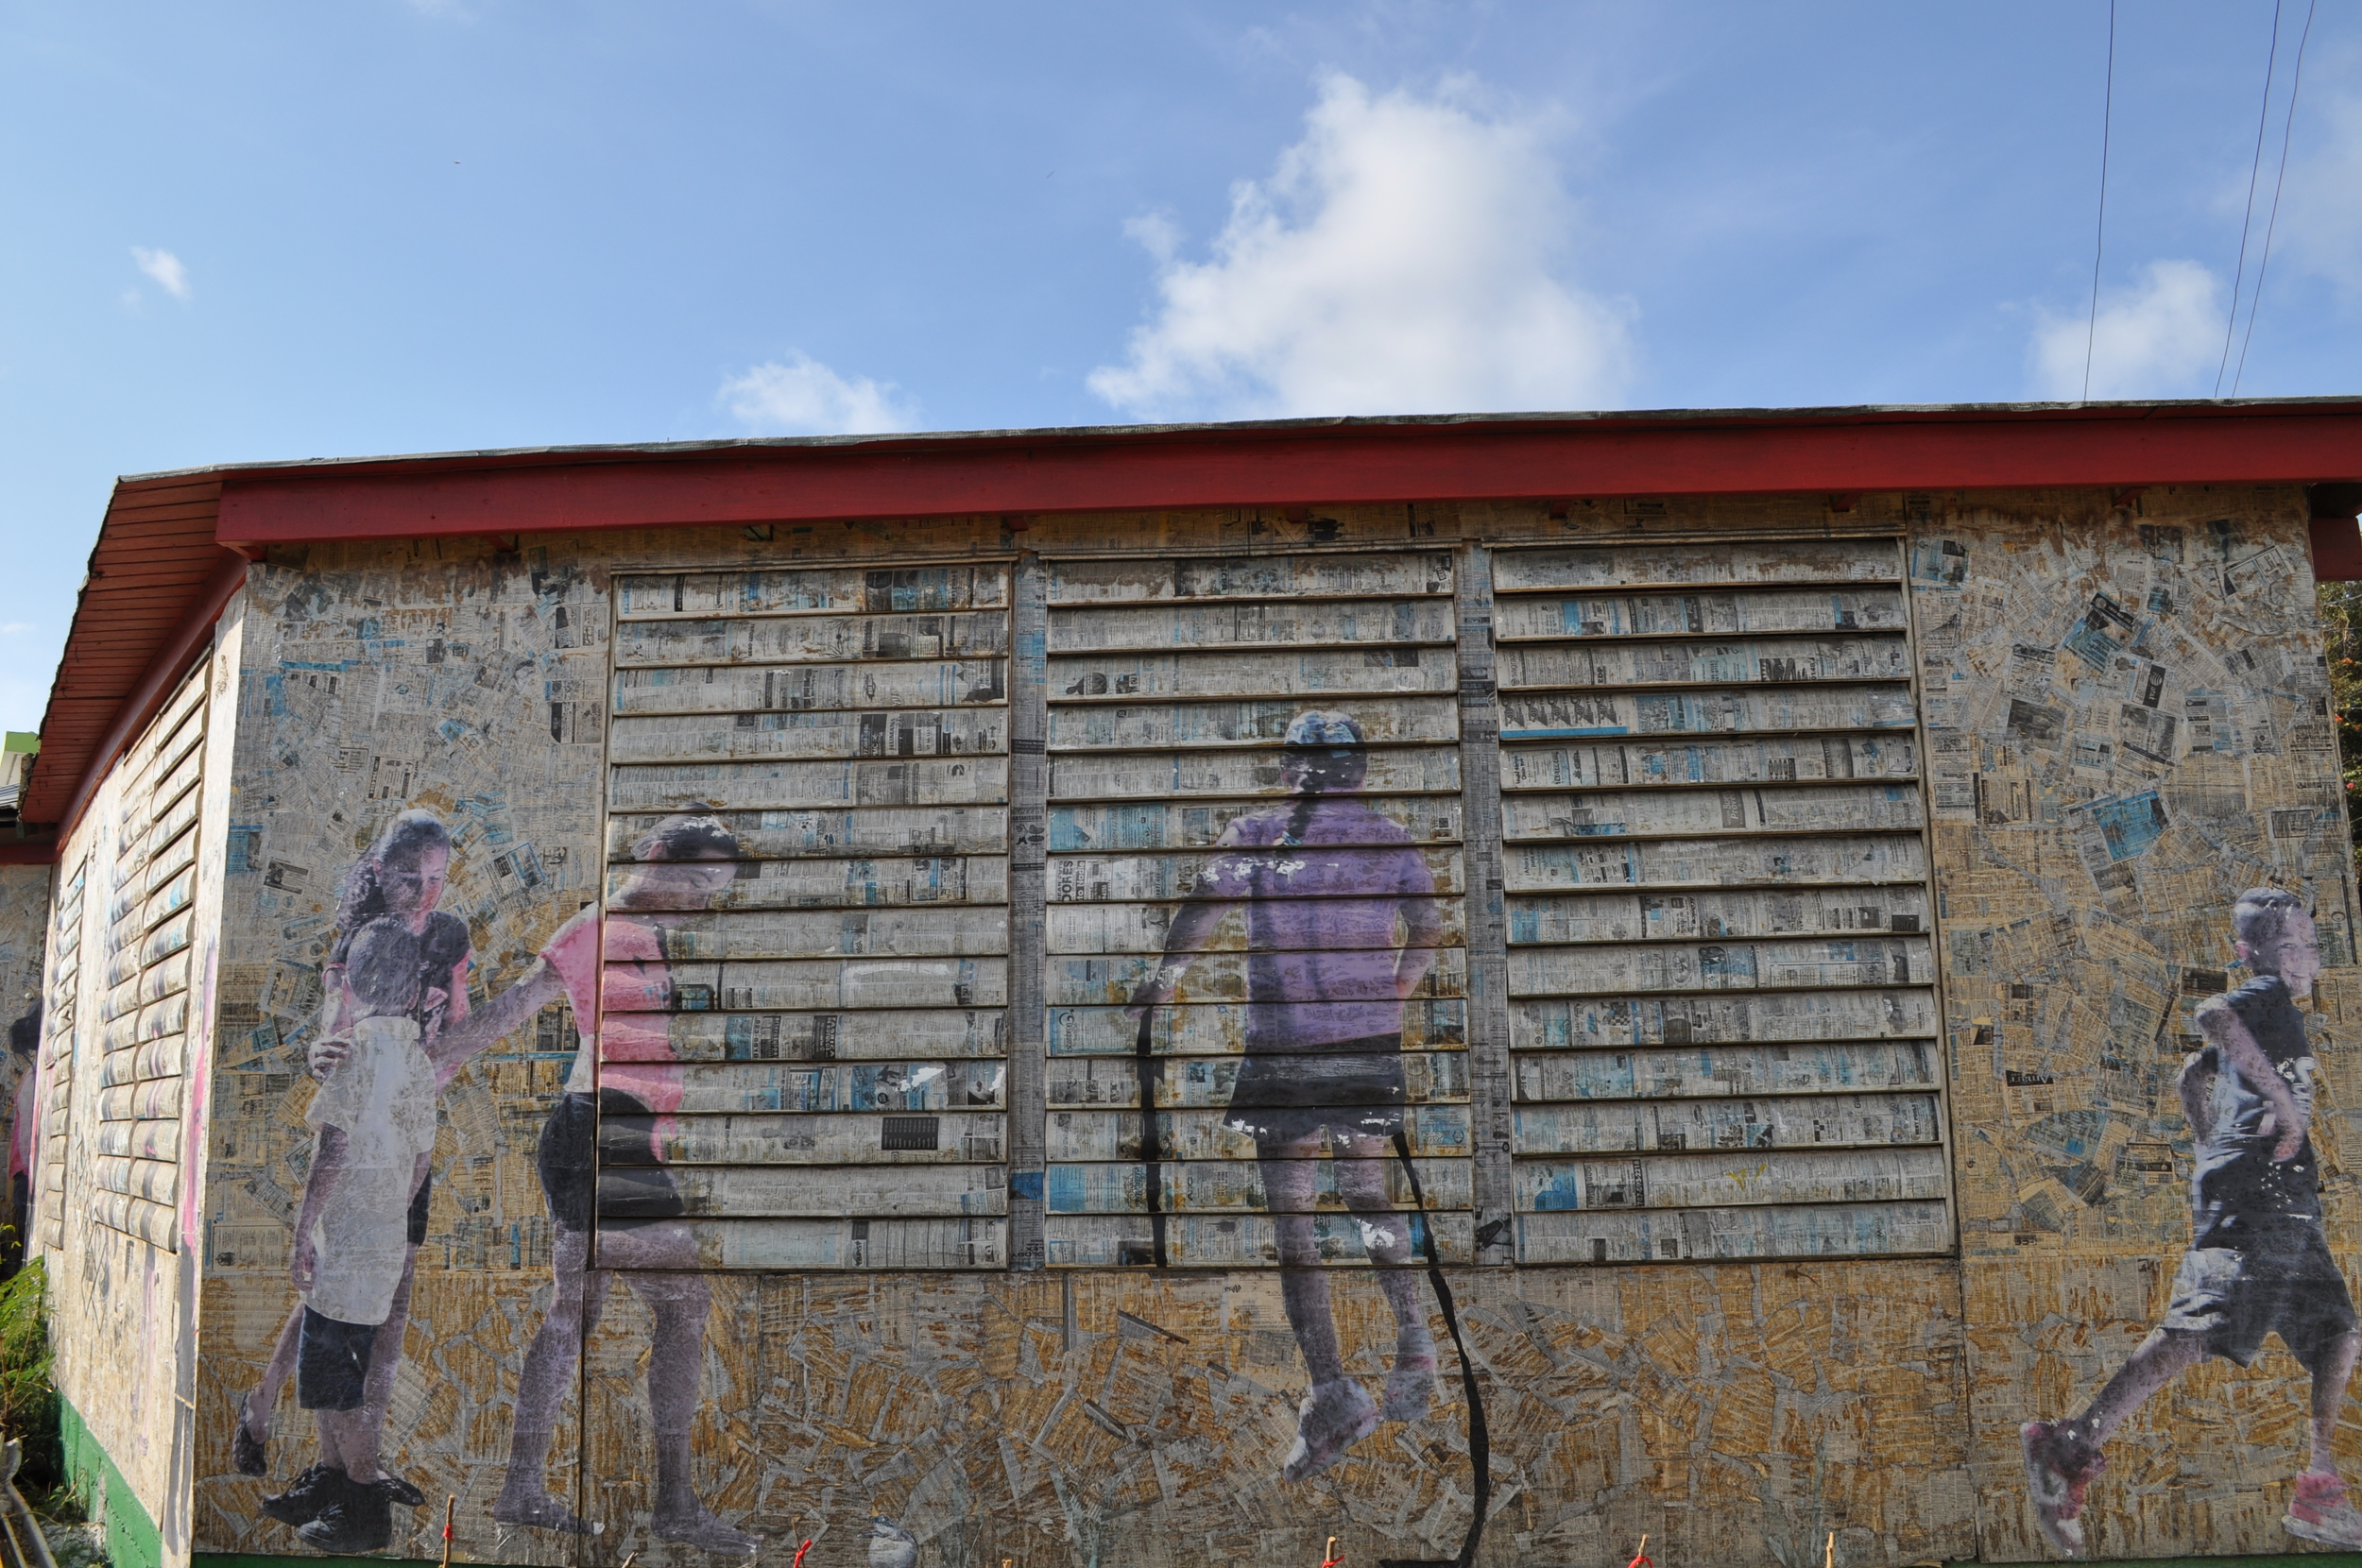 The works of art of Culebra es Ley Festival are other things you can see when visiting the island. Photo: Pamy Rojas